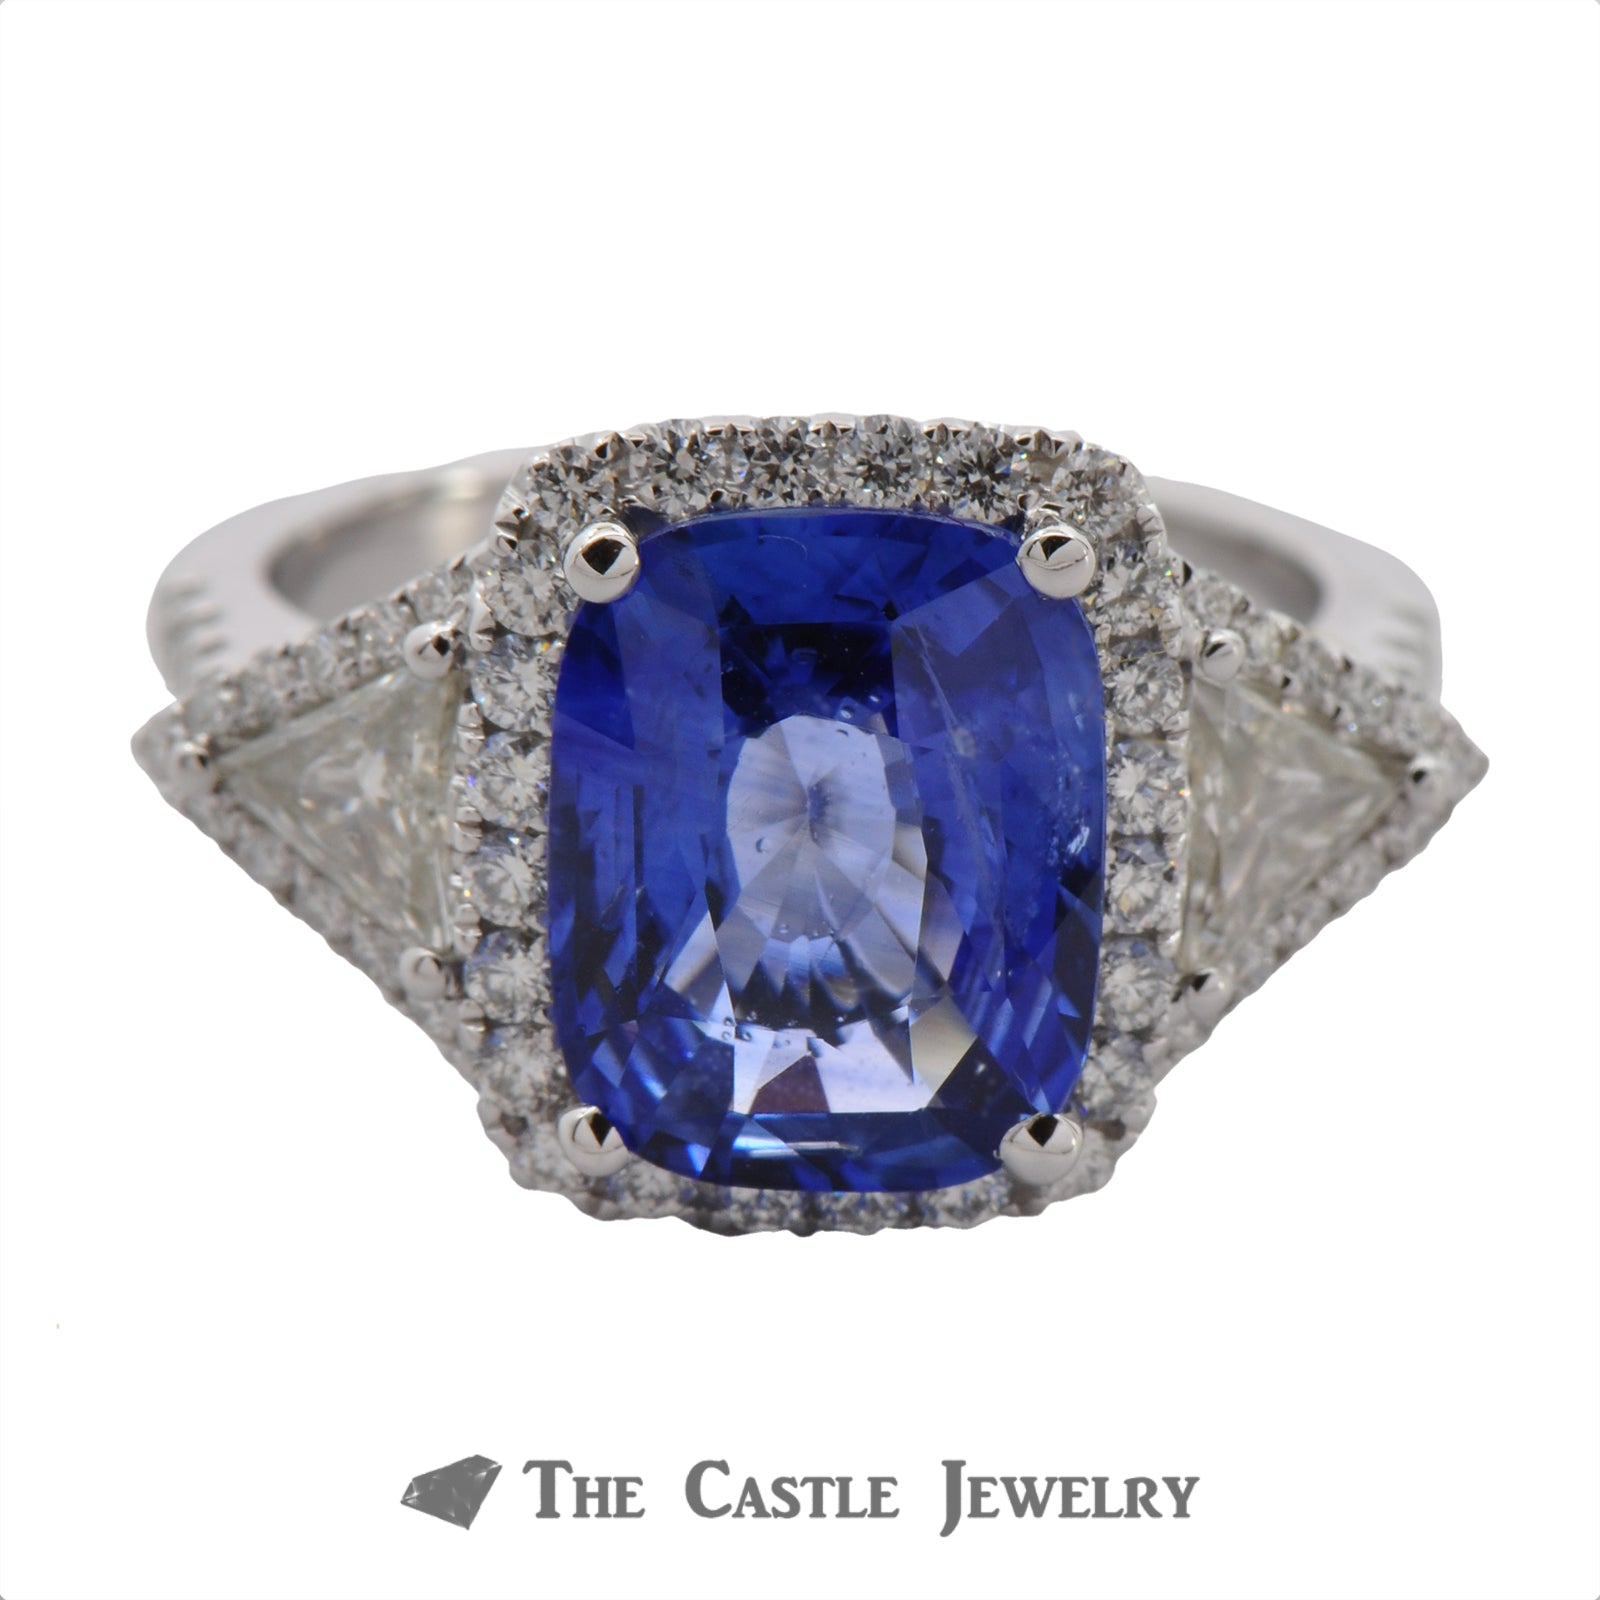 Cushion Cut Sapphire Ring with Trillion & Round Diamond Accents